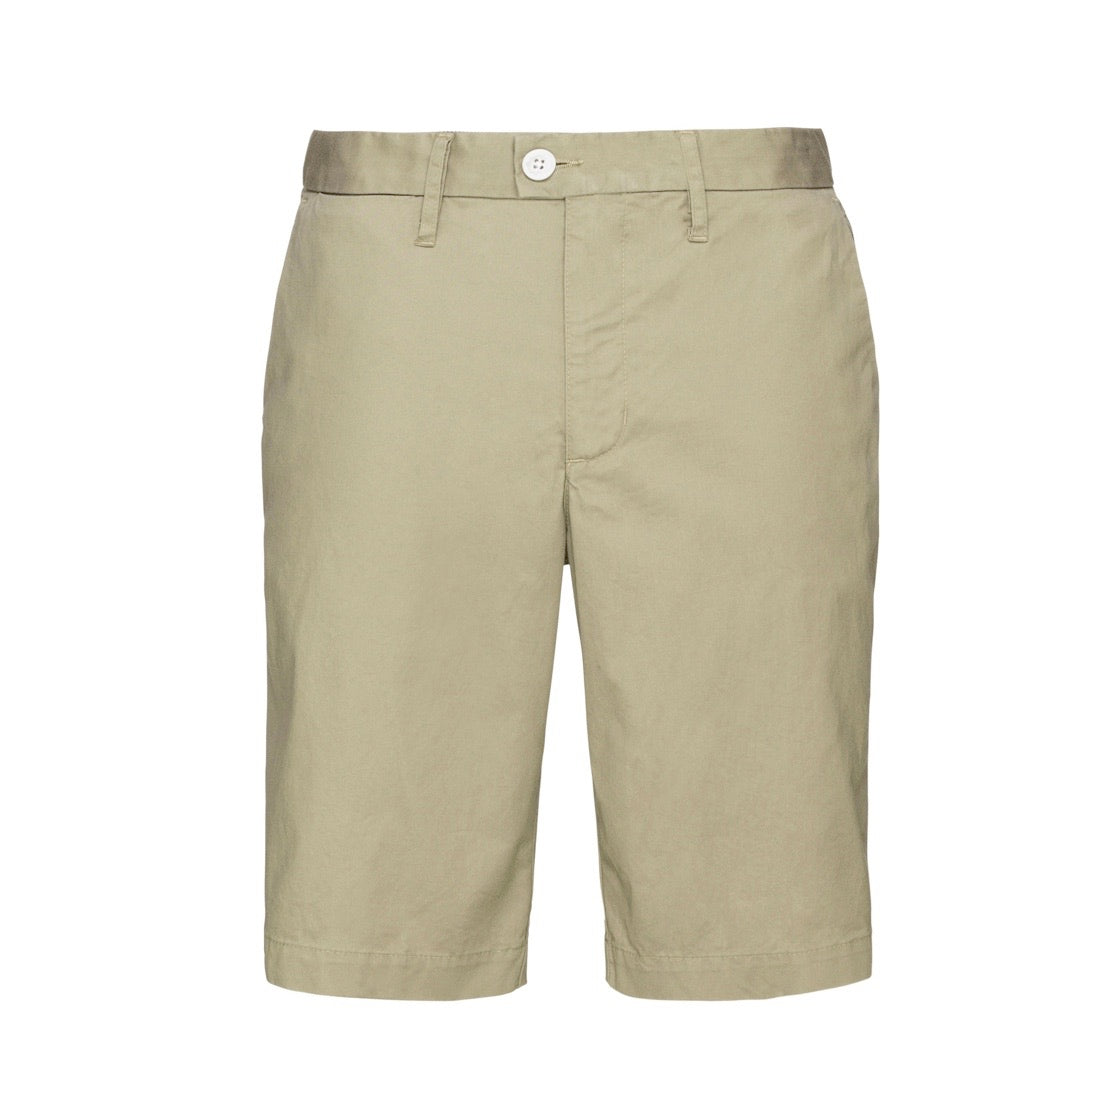 R.M Williams Scarborough Shorts Buckskin